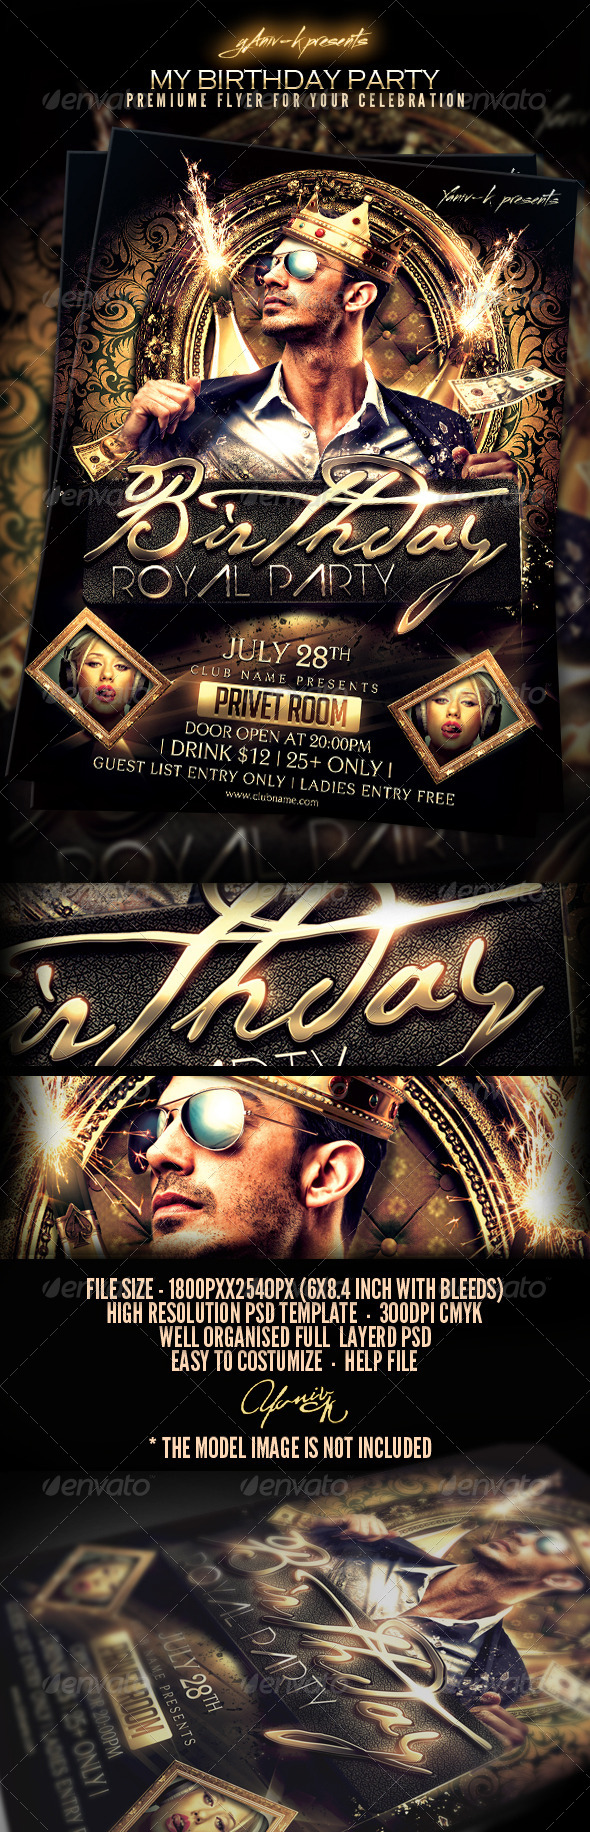 My birthday bachelor party invitation template moderngentz my birthday party flyer templateattention this hot flyer will overload your bash this template designed to promote celebrations parties and more filmwisefo Image collections